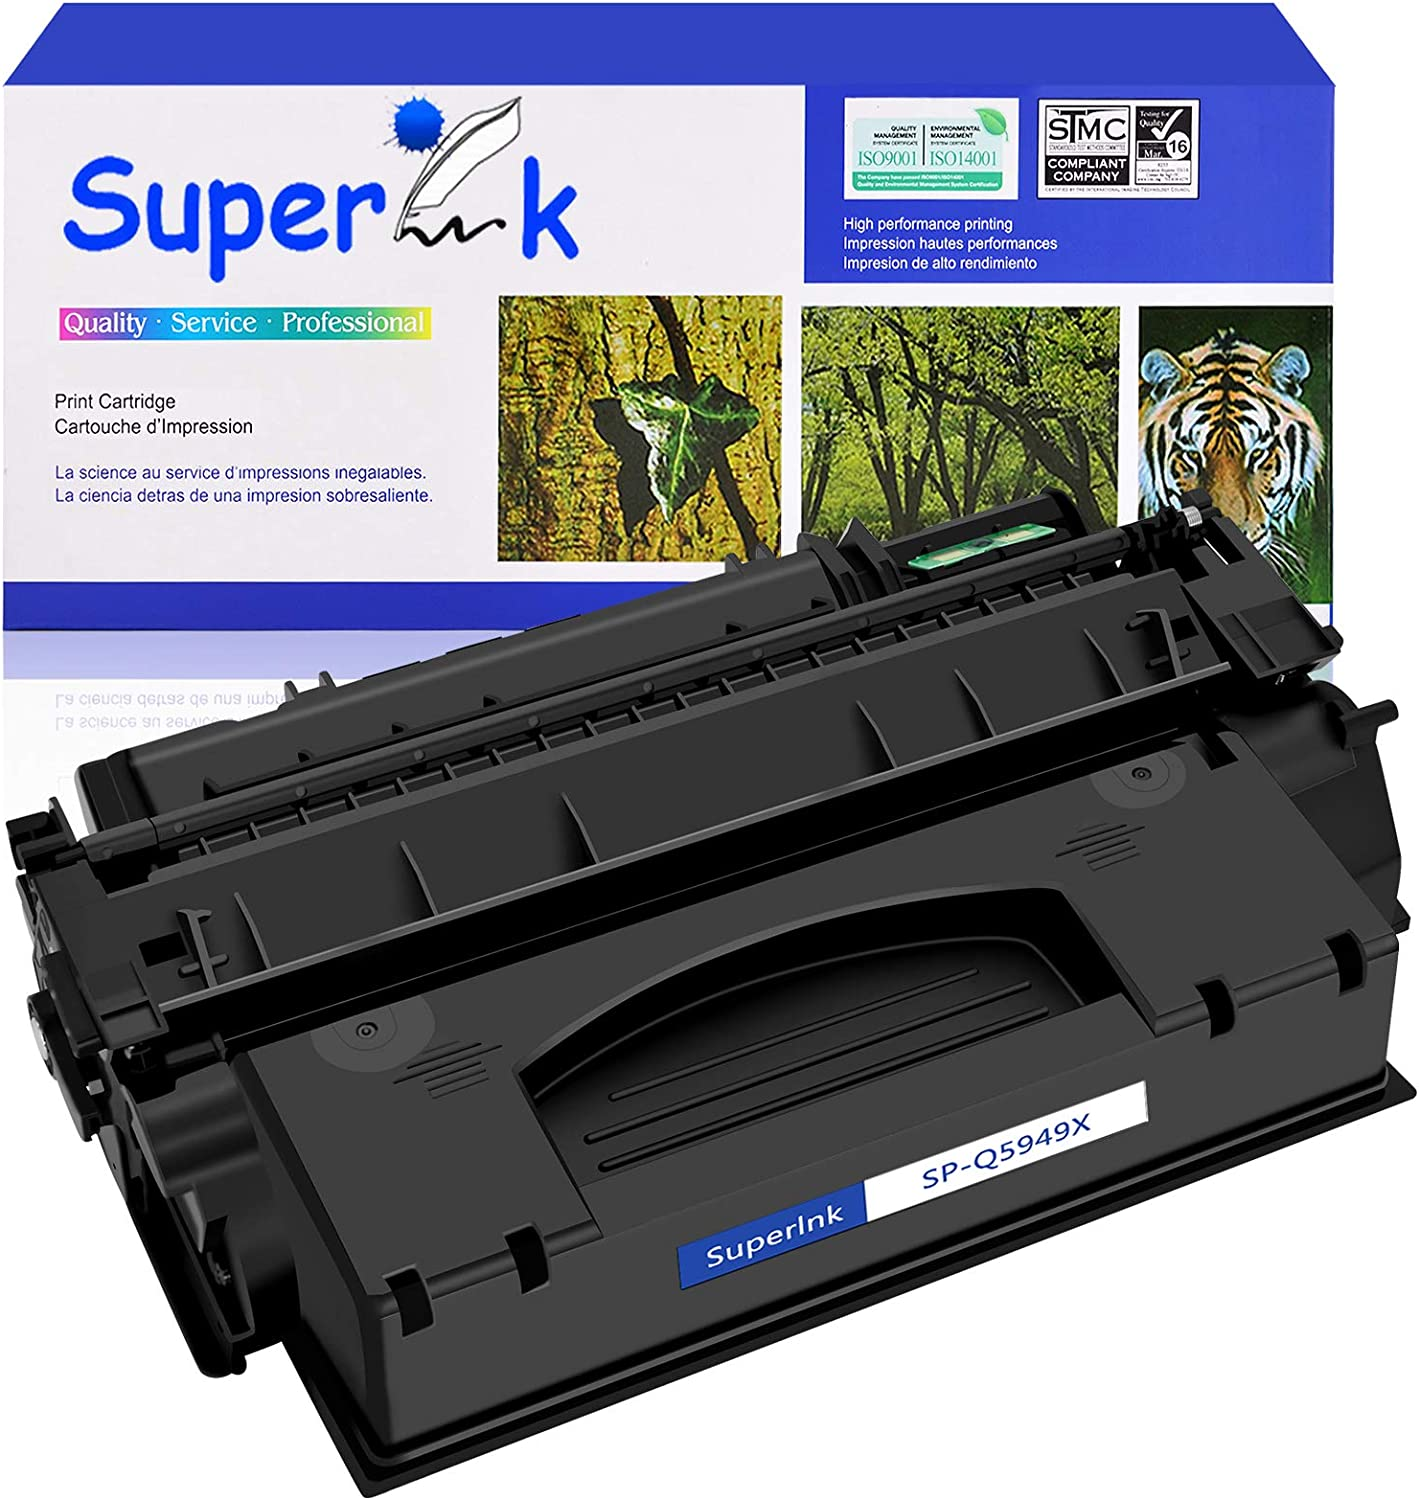 SuperInk Compatible for HP Q5949X 49X Toner Cartridges High Yield (1 Black) Replacement with Laserjet 1320 1320n 1320nw 1320t 1320tn 3390 3392 Printer